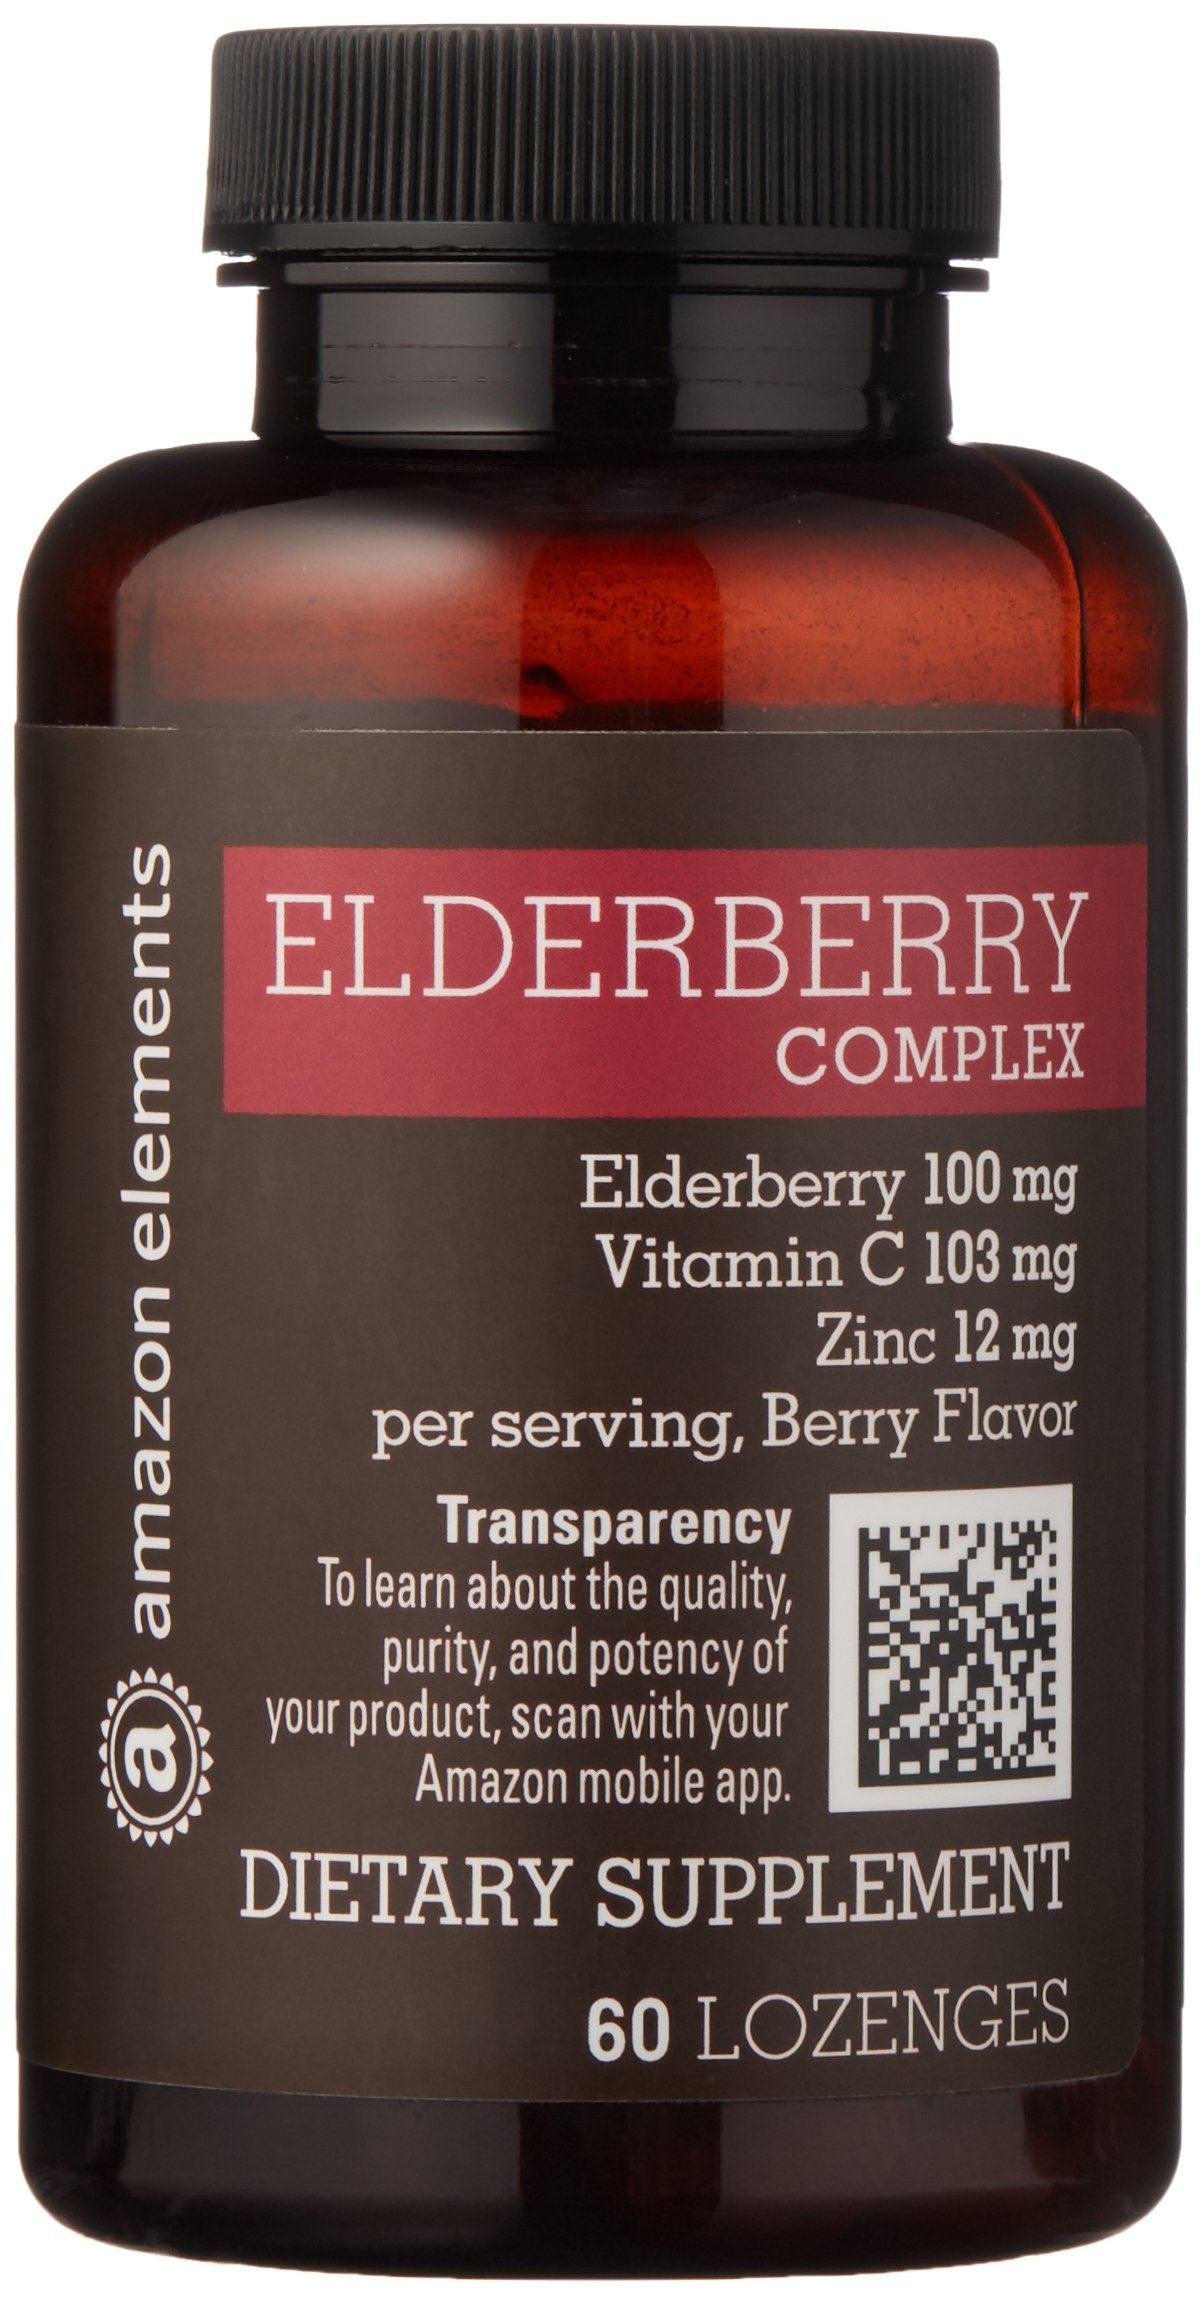 Amazon Elements Elderberry Complex, 60 Berry Flavored Lozenges, Elderberry 100mg, Vitamin C 103mg, Zinc 12mg, up to a 2 month supply